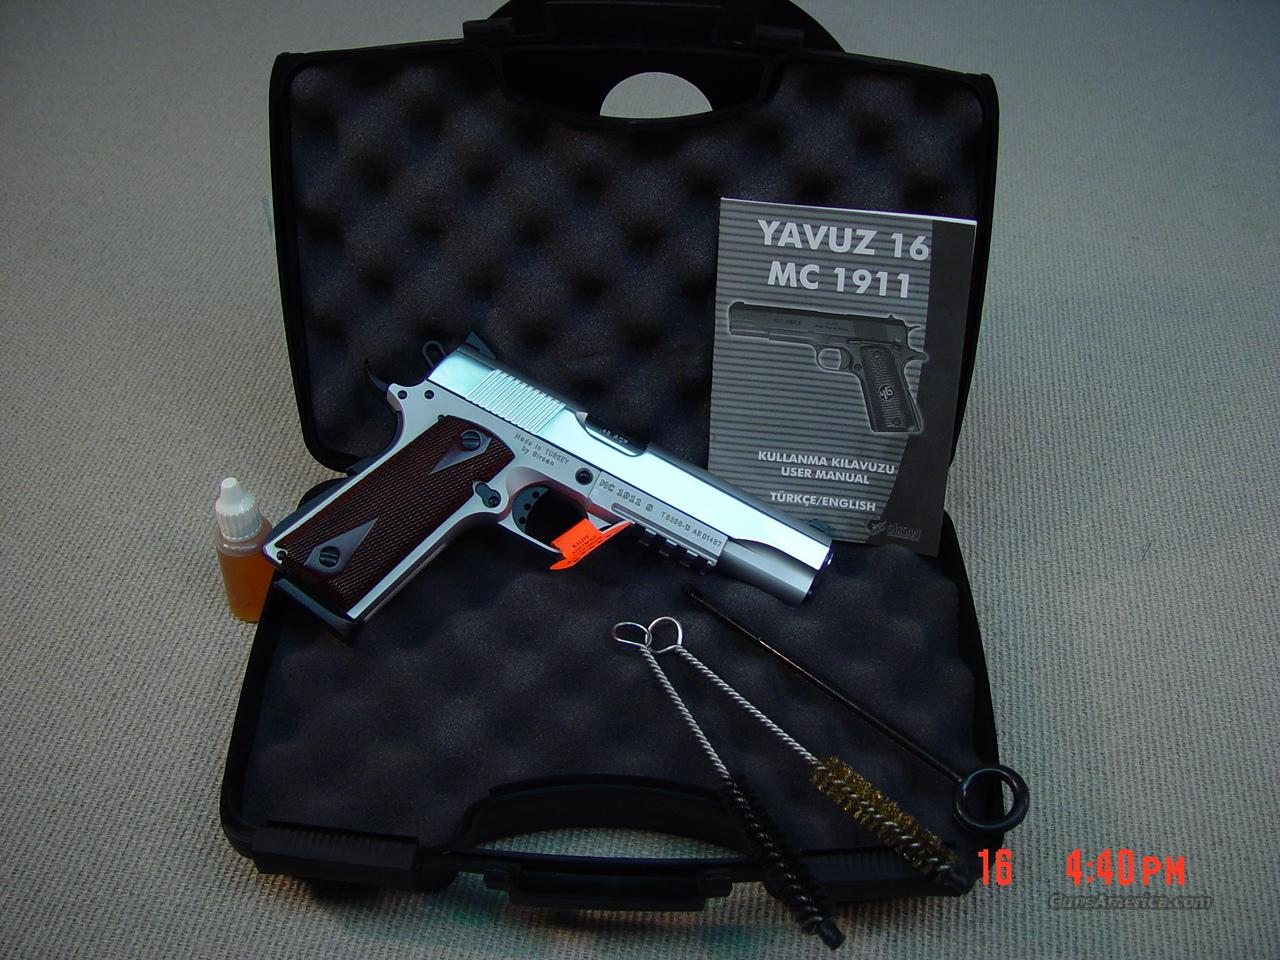 GIRSAN MC 1911 S White G2 45acp